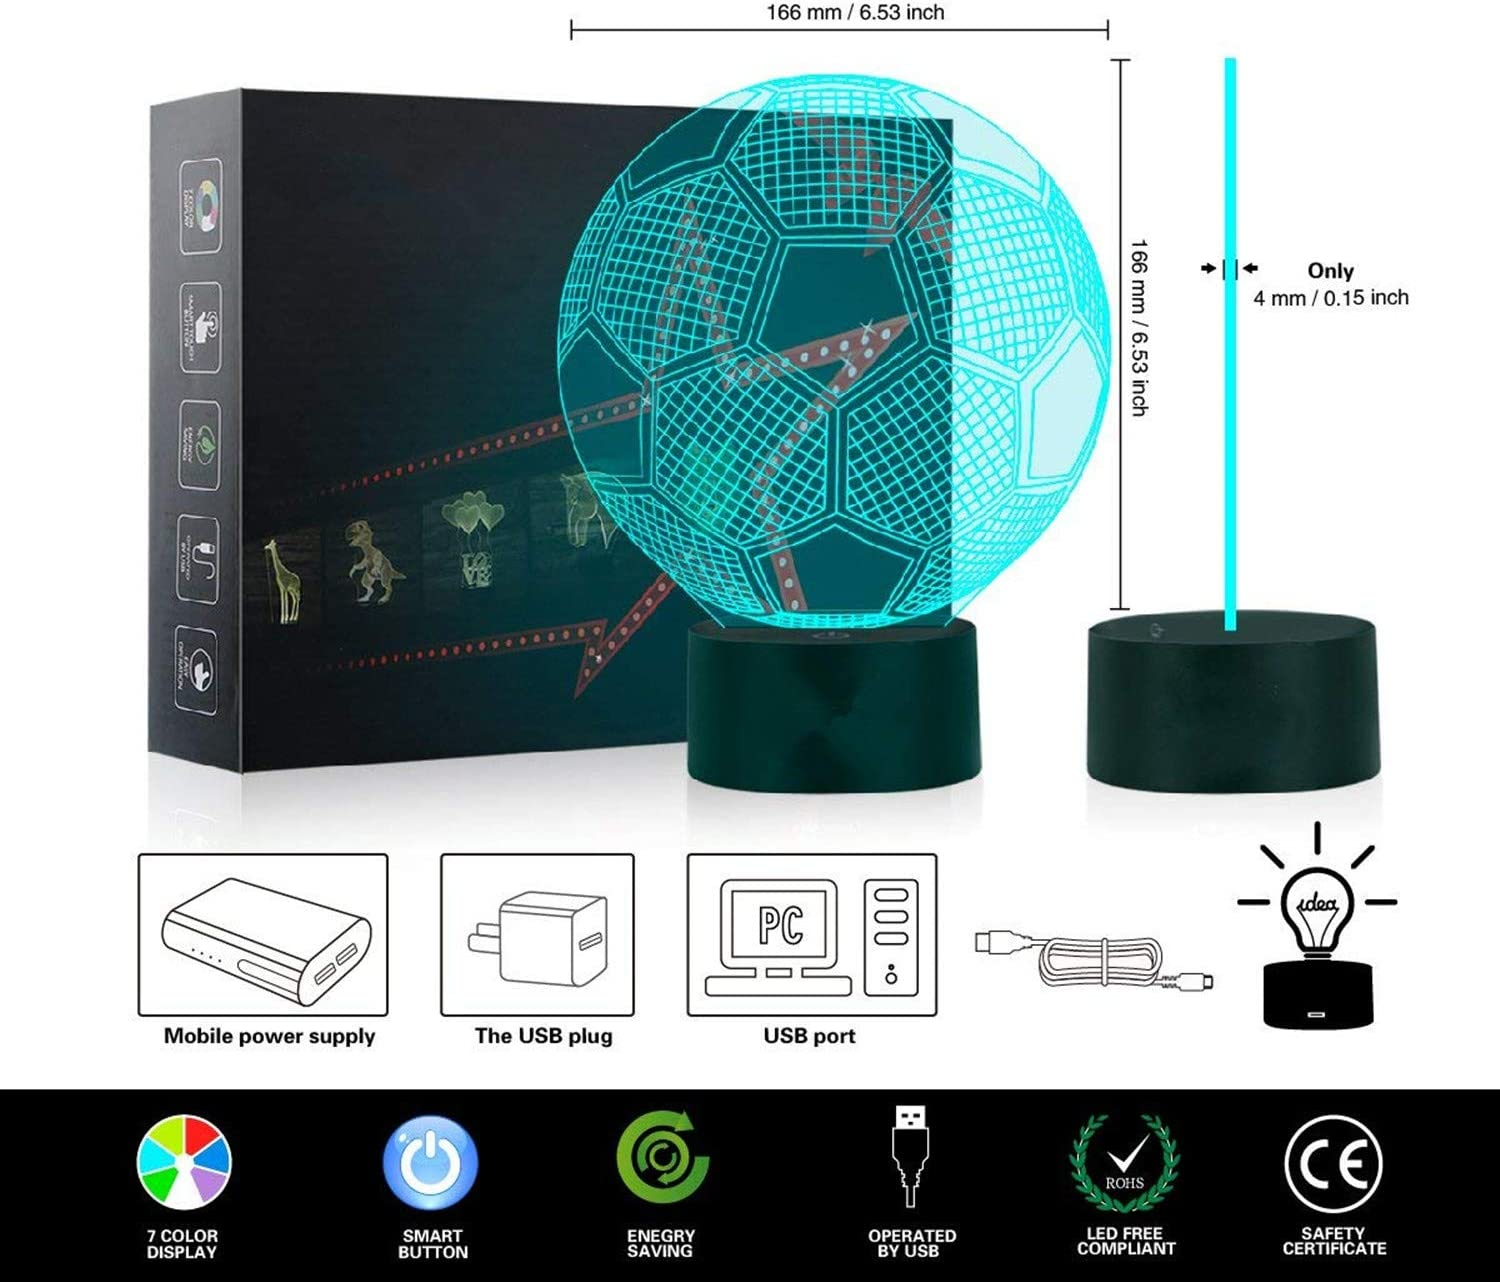 3D LED Star Wars Night Light,7 Color Change Decor Lamp,3D Lights Optical Illusions Desk Lamp for Room Decor,Perfect Gifts for Kids and Star Wars Fans